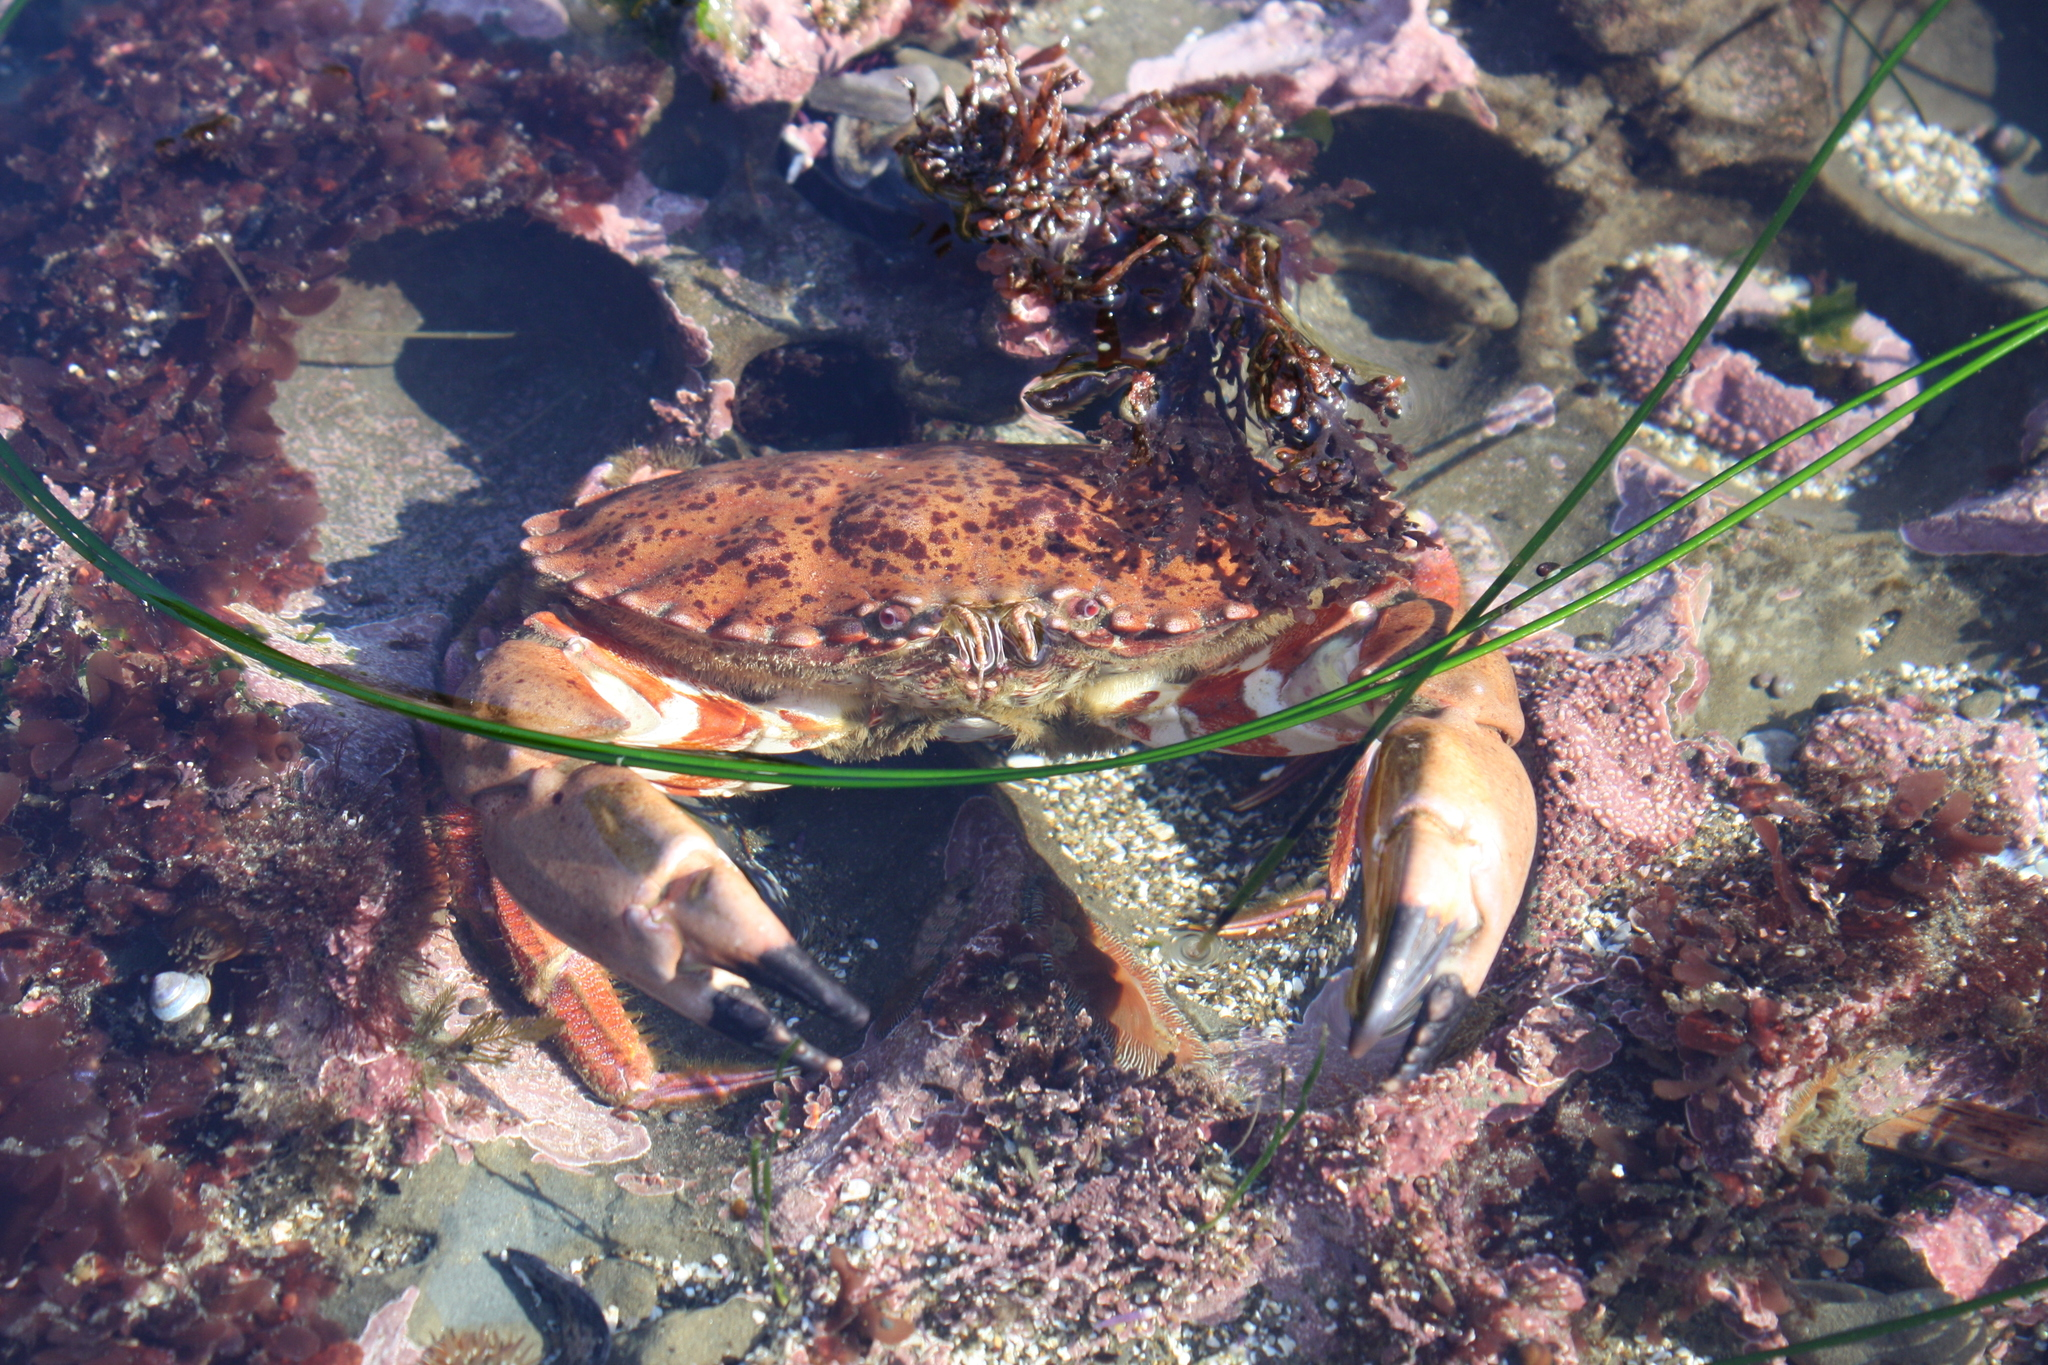 Rock crab hiding amongst substrate